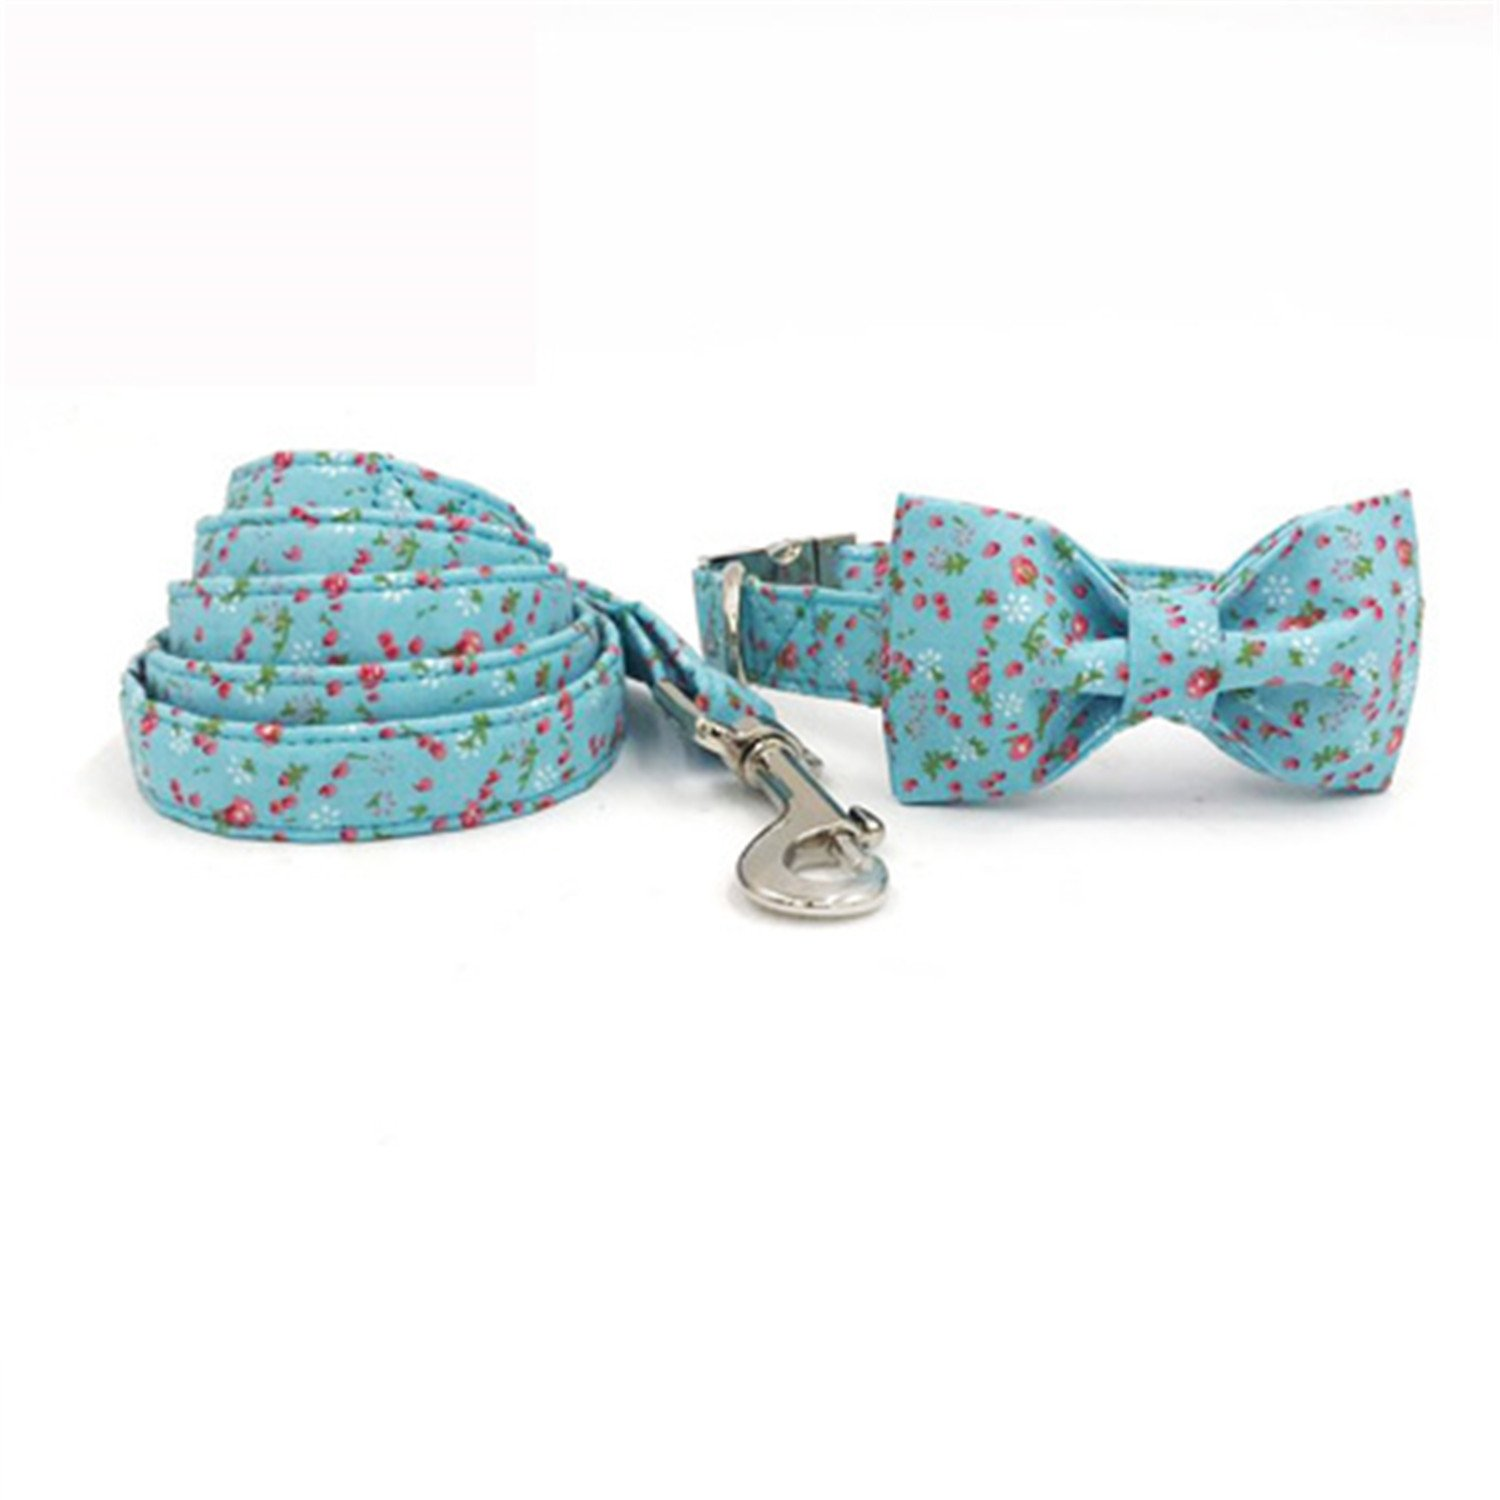 Collar bow and leash L collar bow and leash L Surprising Day The Bule Dog Collar and Lead Set with Bow tie Cotton Dog &cat Necklace and Dog Leash for pet Supplies Collar Bow and Leash L